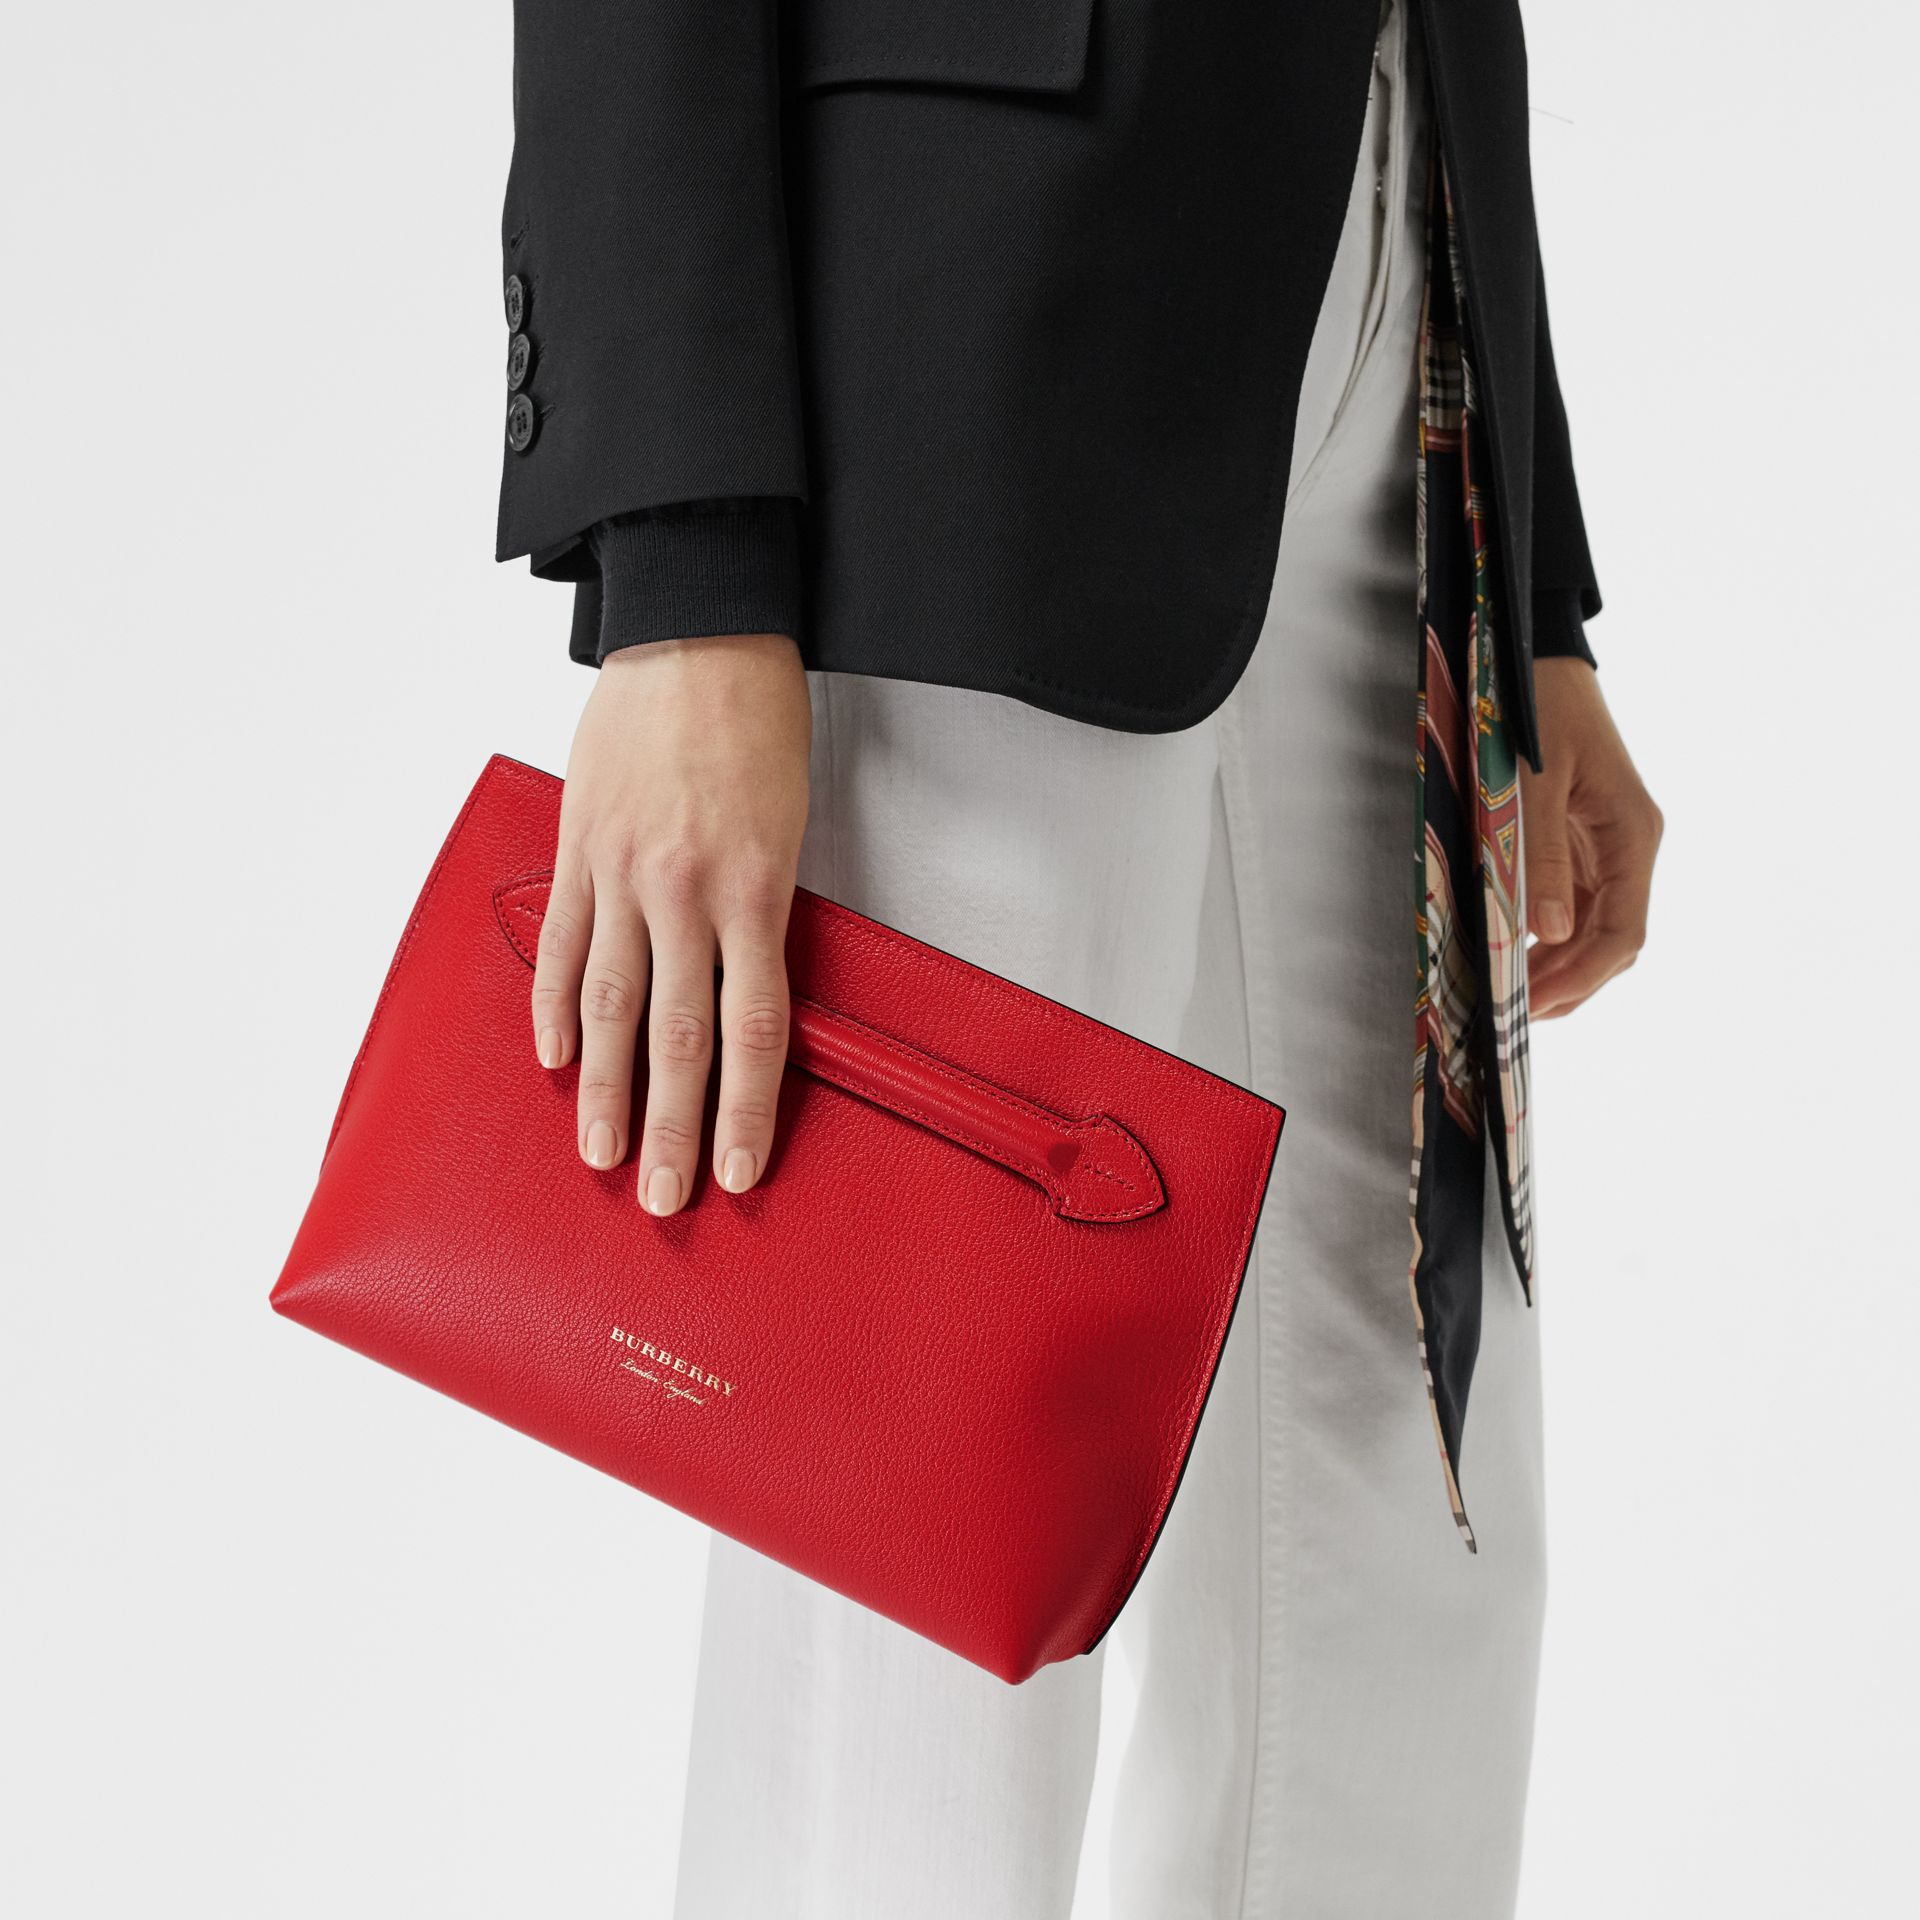 Grainy Leather Wristlet Clutch in Bright Red - Women | Burberry United Kingdom - gallery image 3